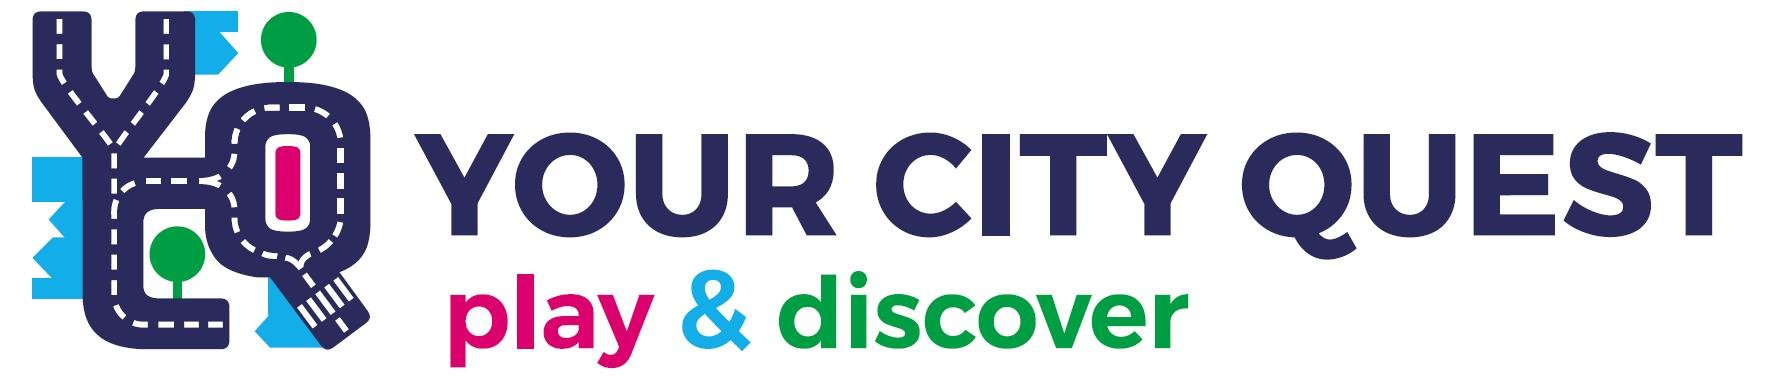 YourCityQuest GameOwner Account anlegen